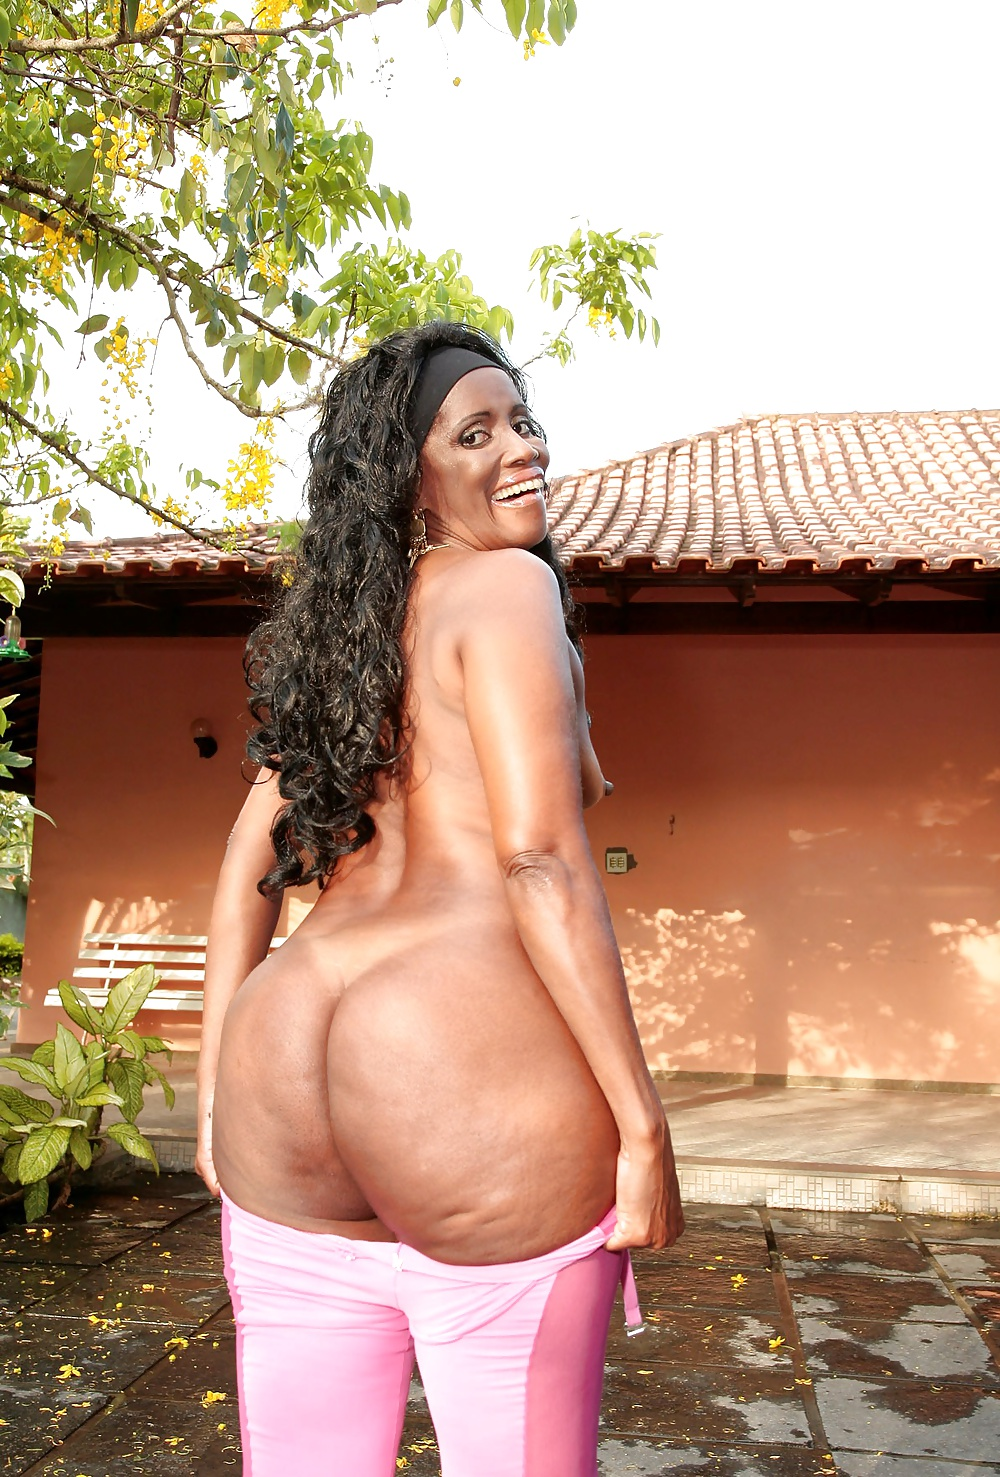 Torture bdsm thick nude brazilians hot